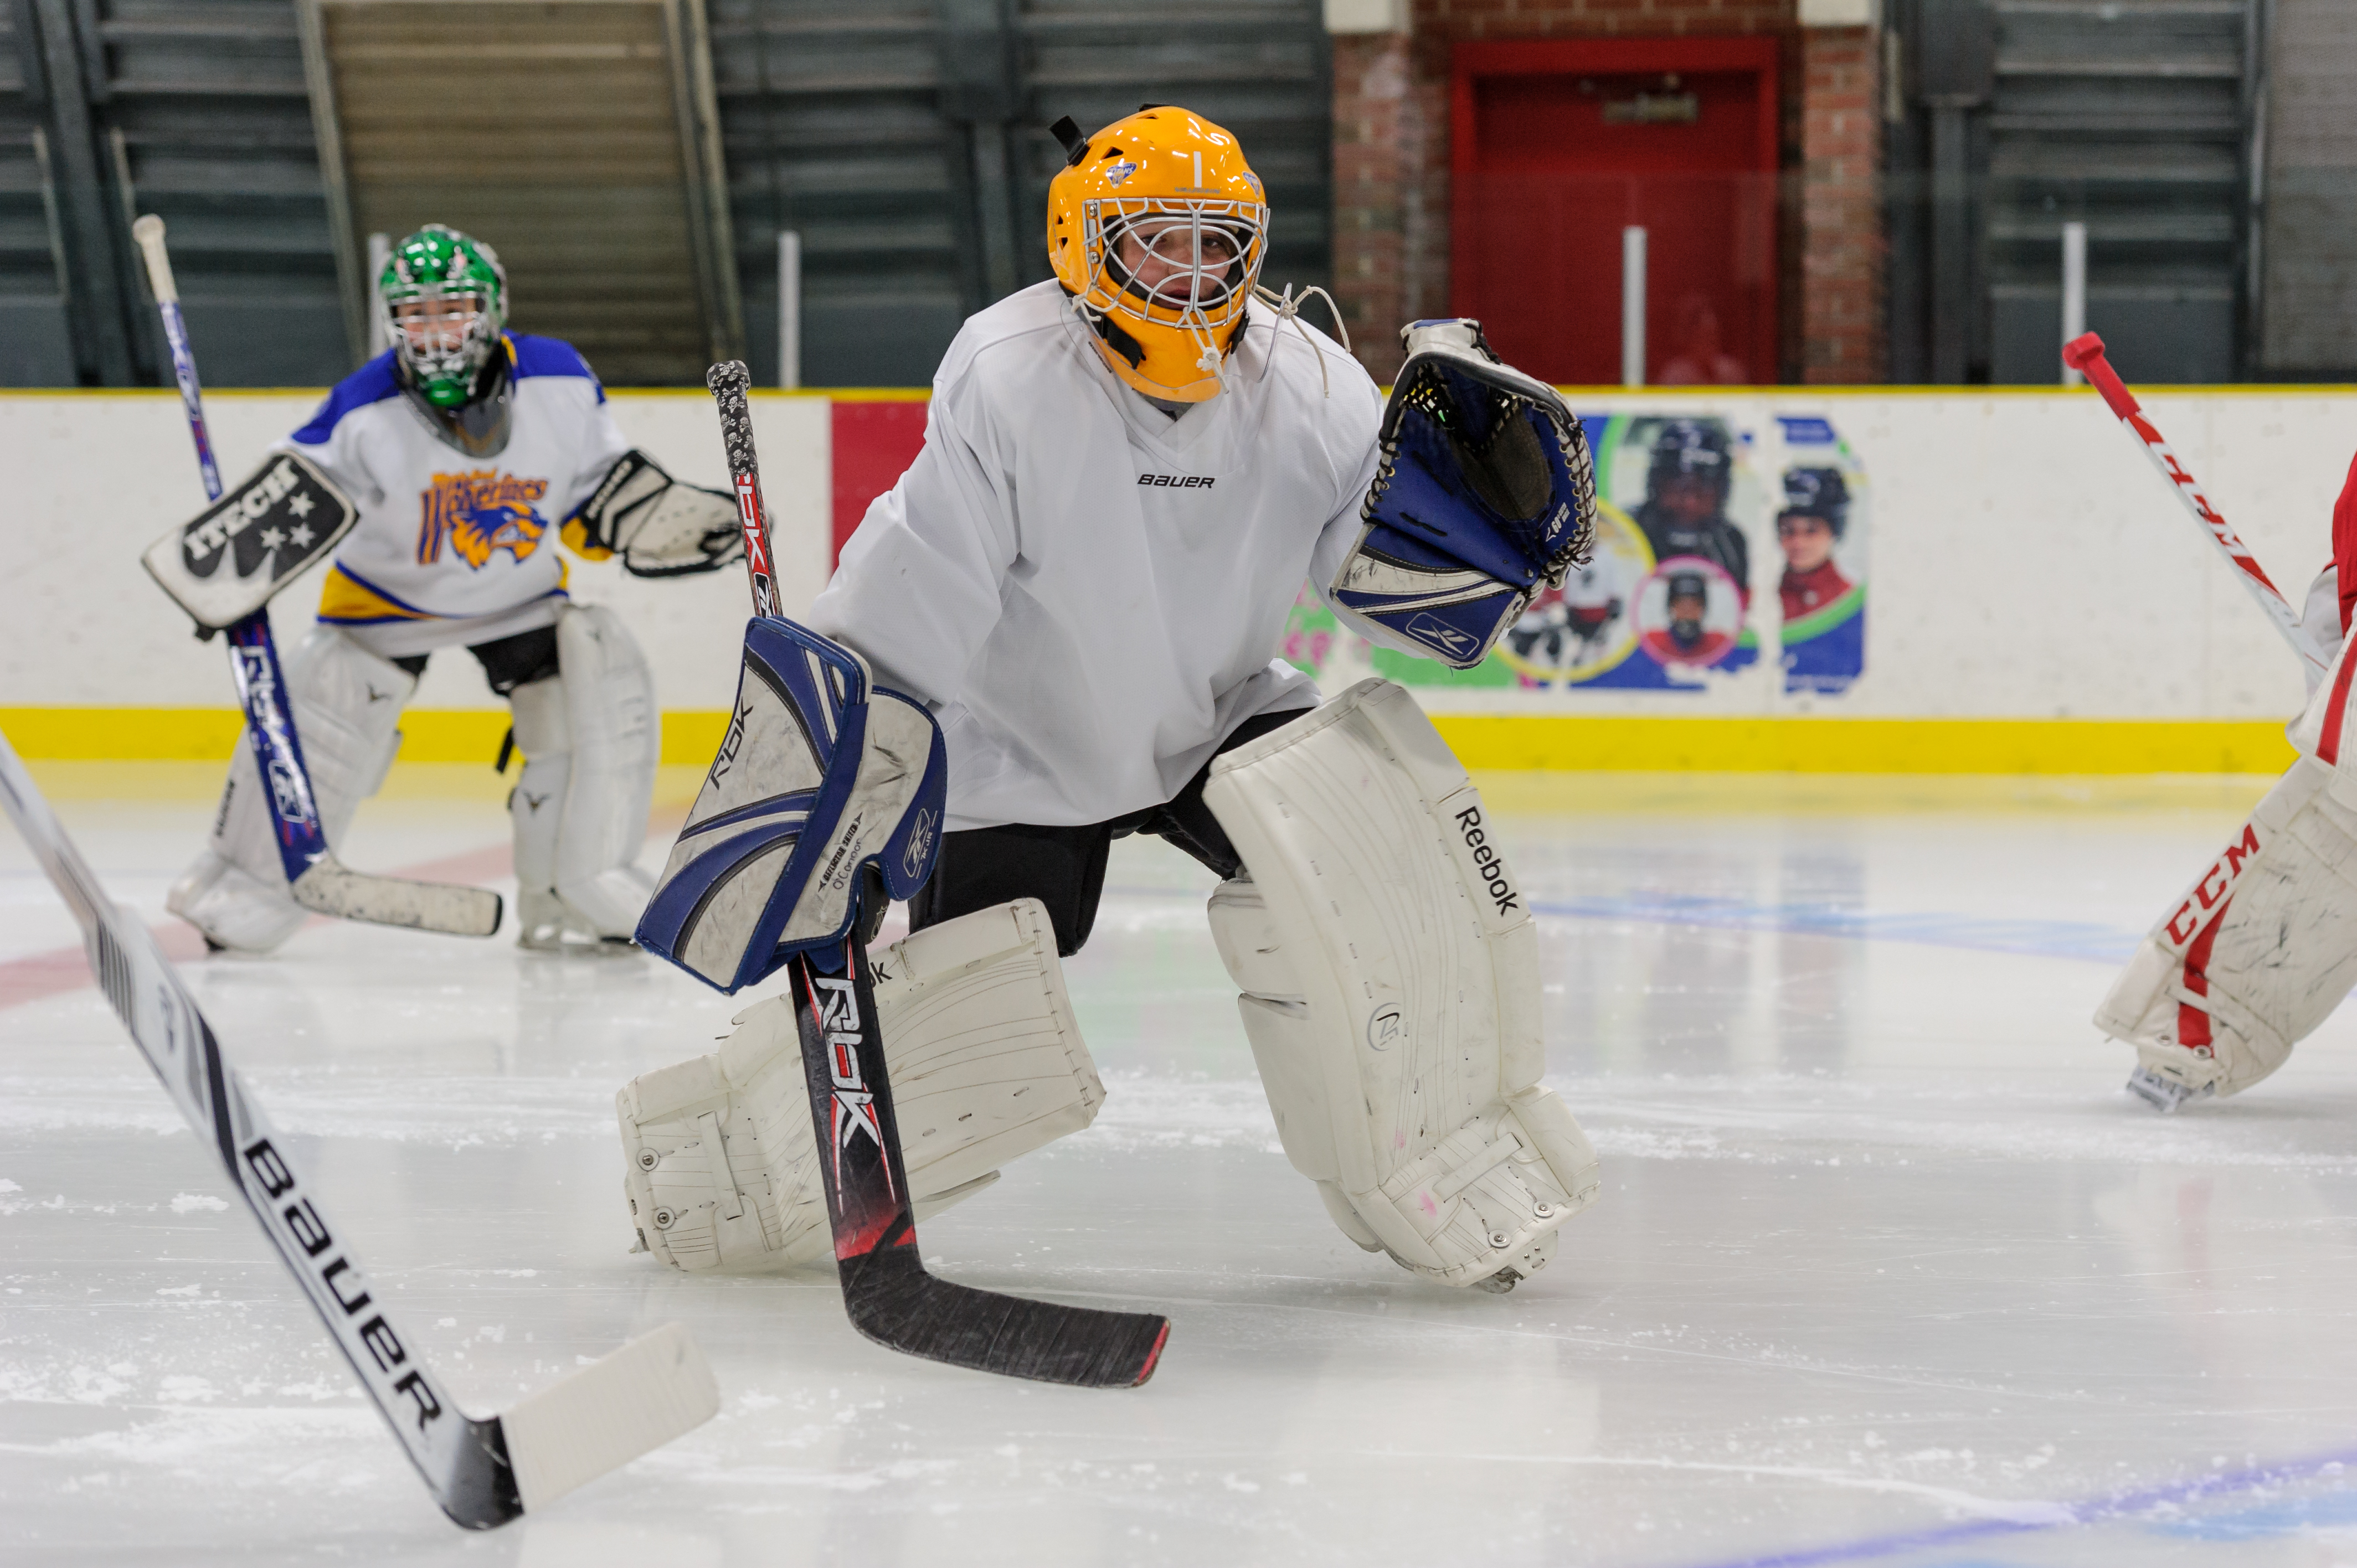 Programs Gaahockey Elite Ottawa Goalie Training